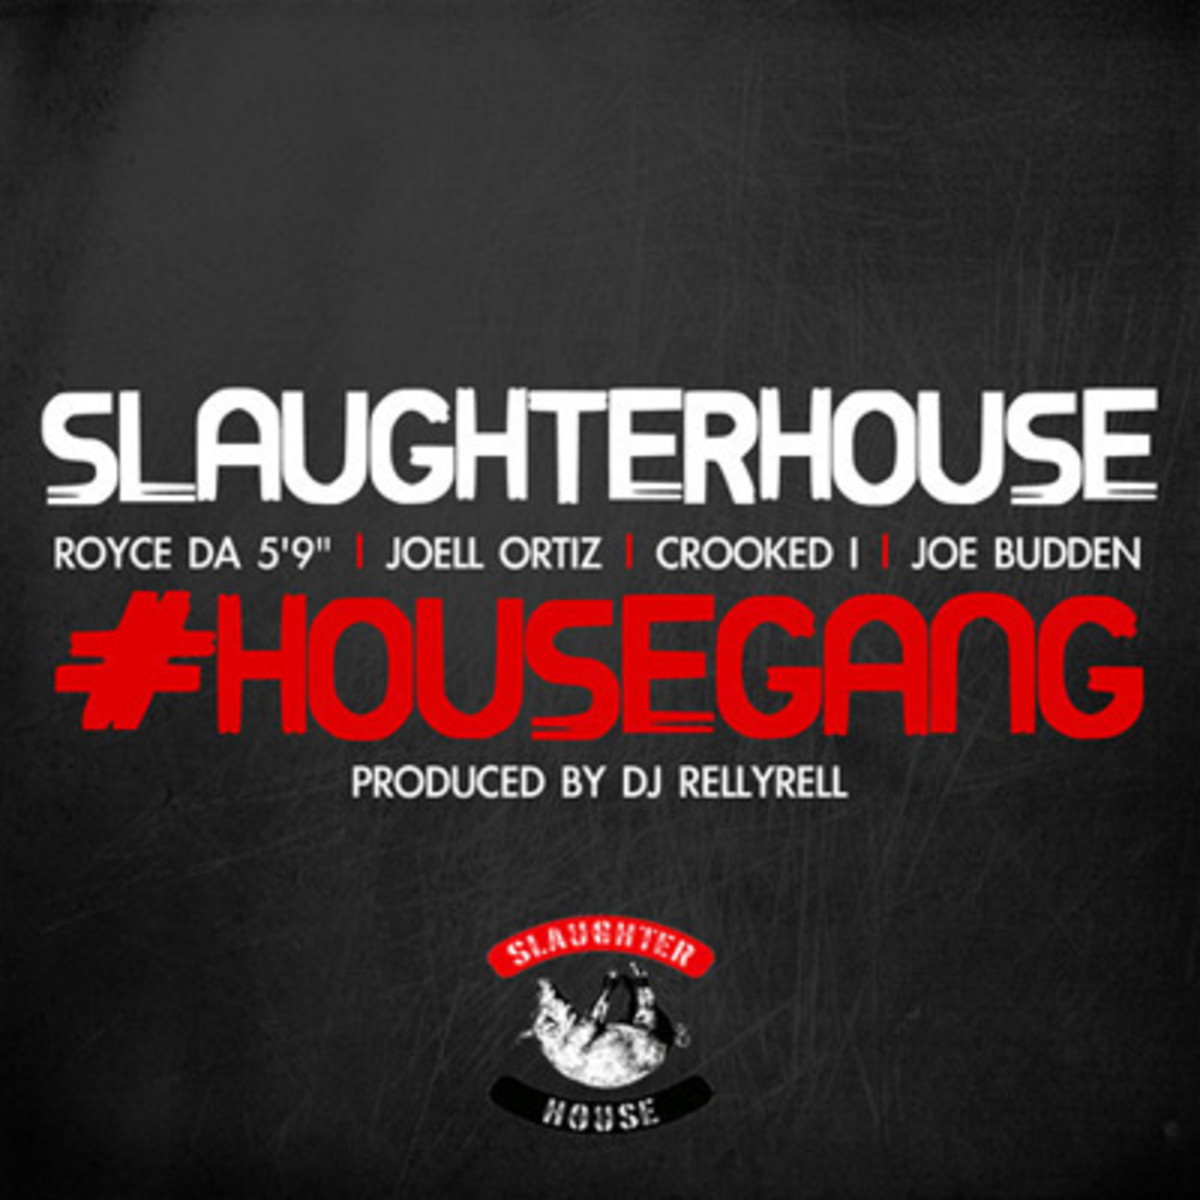 slaughterhouse-housegang.jpg